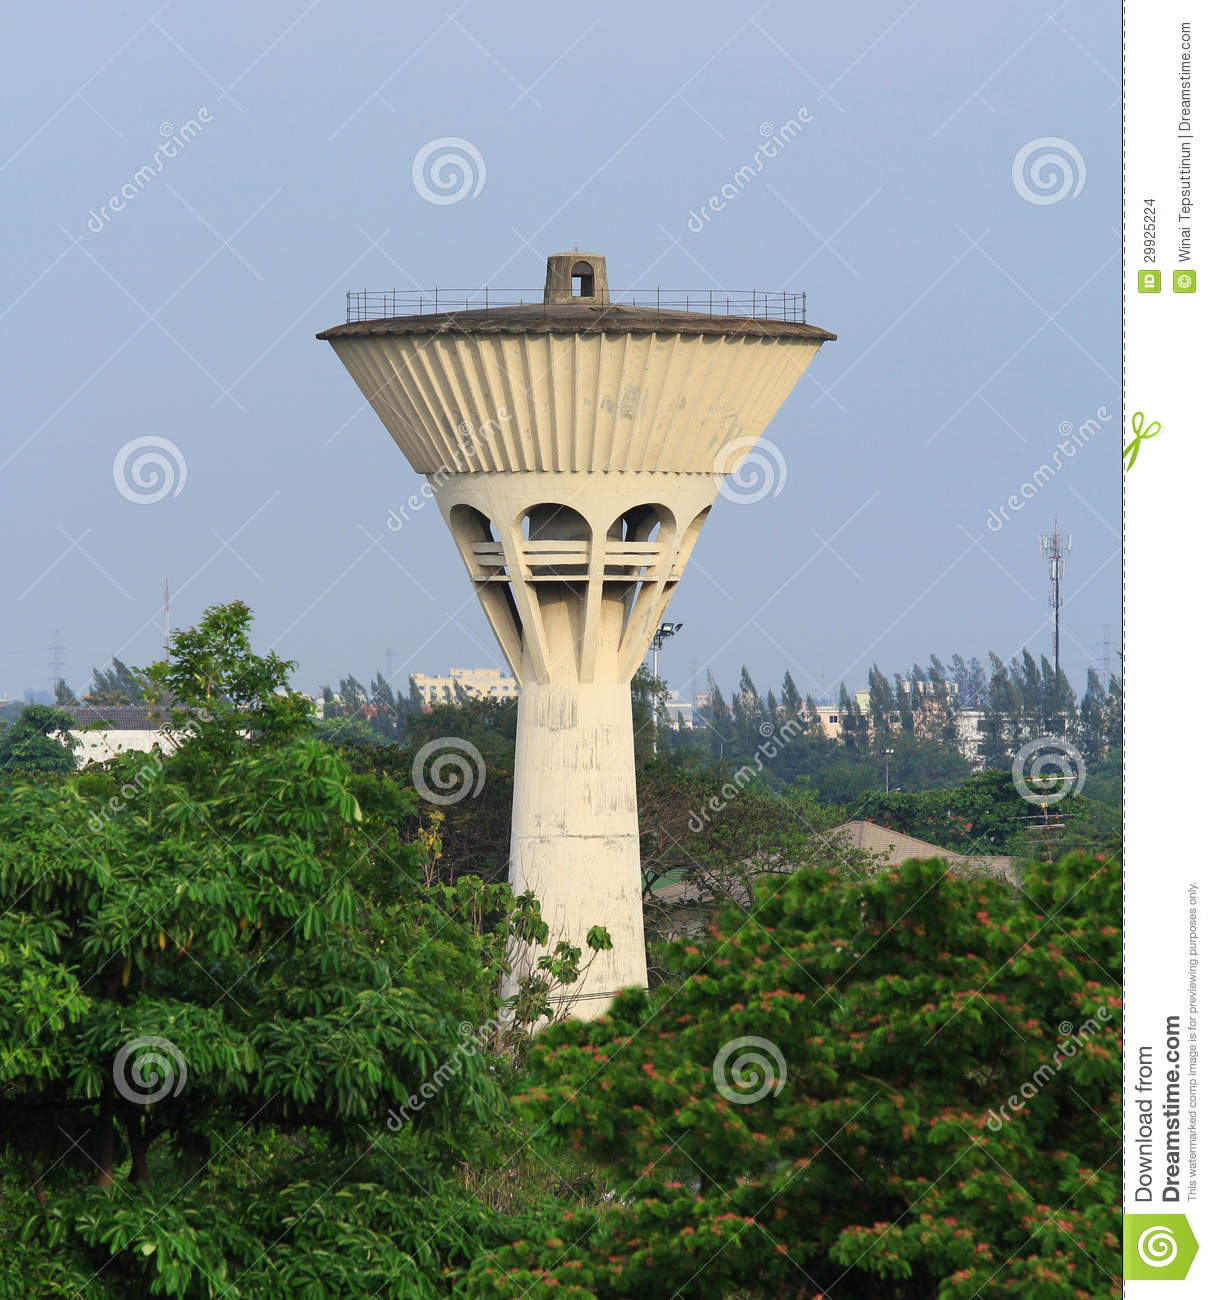 Water Tank Tower Stock Images - Image: 29925224